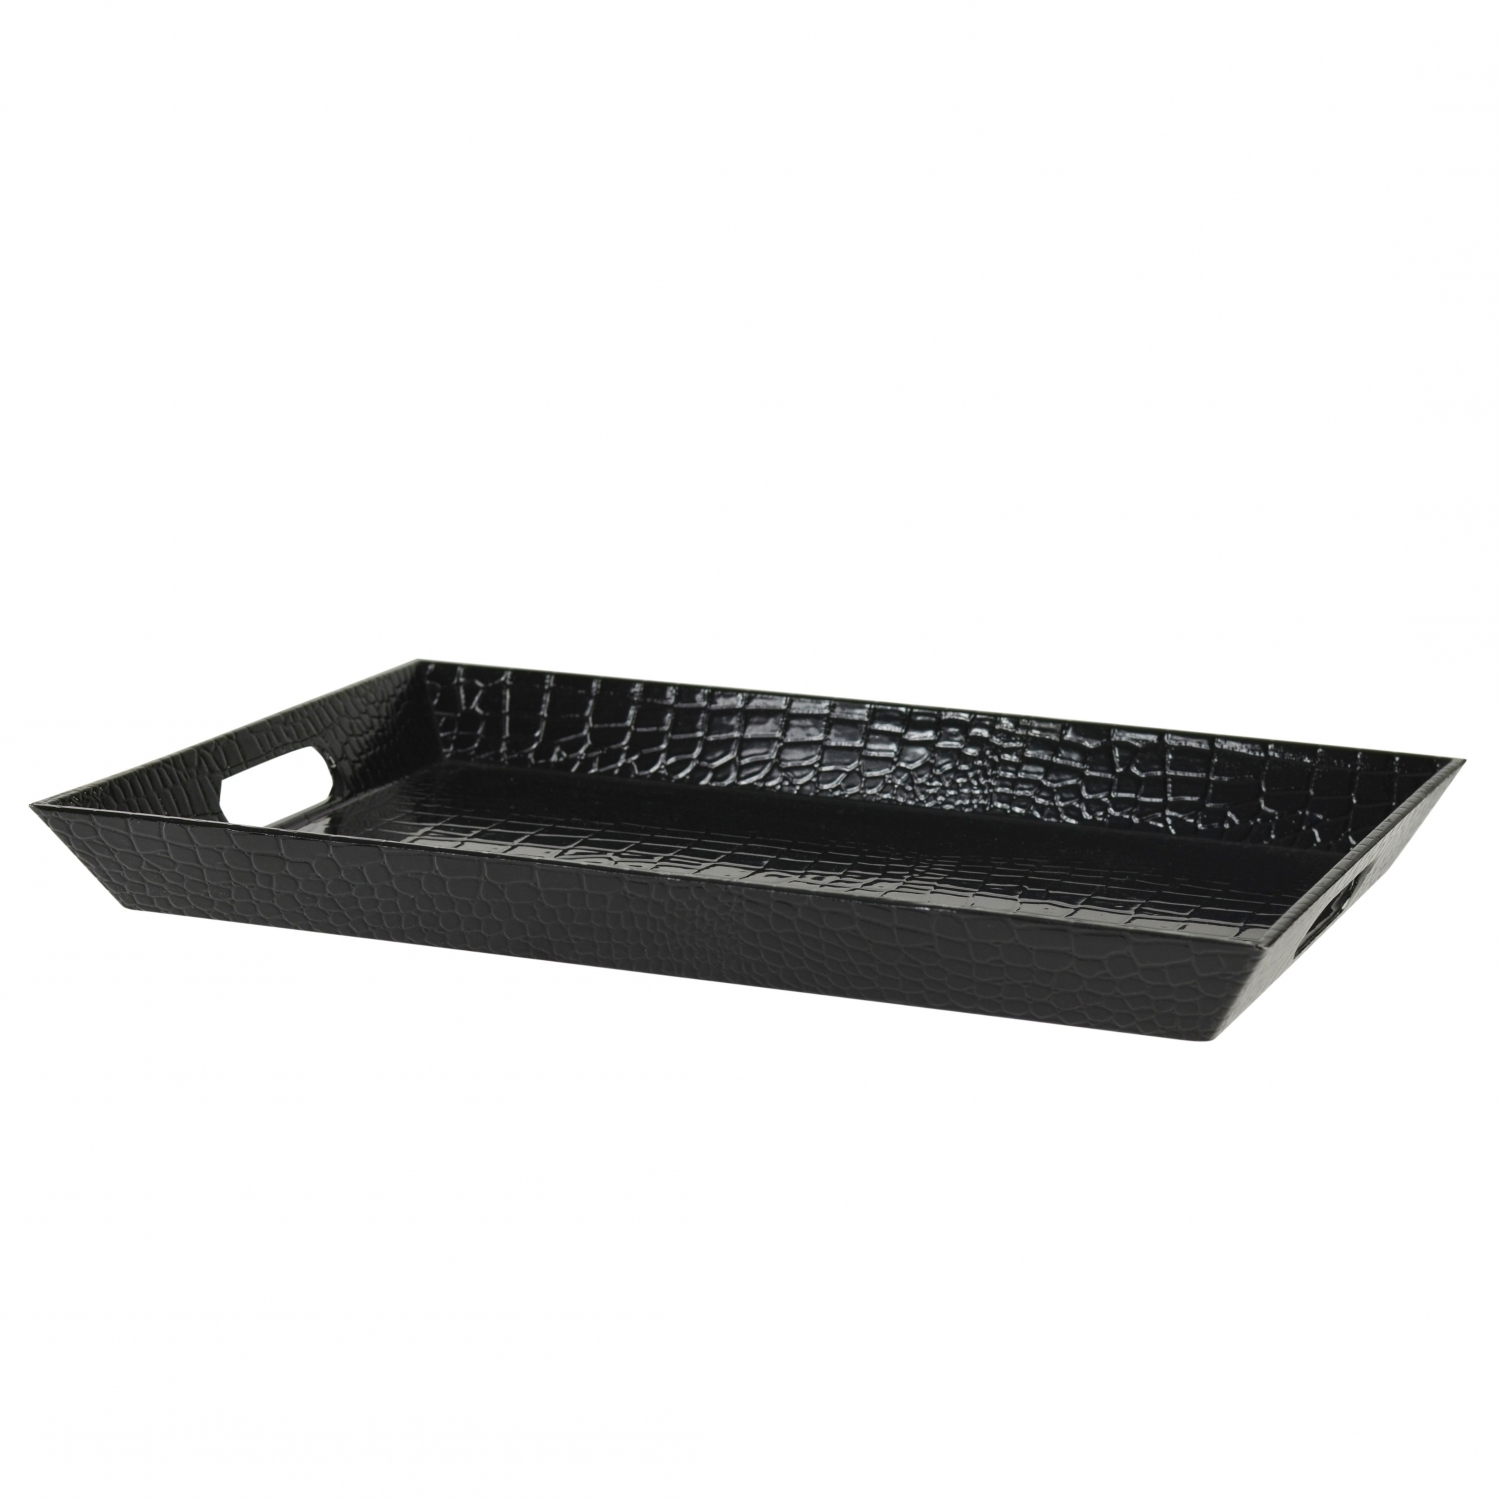 10 Strawberry Street GATR-BLKREC Black Rectangular Gator Serving Tray 18